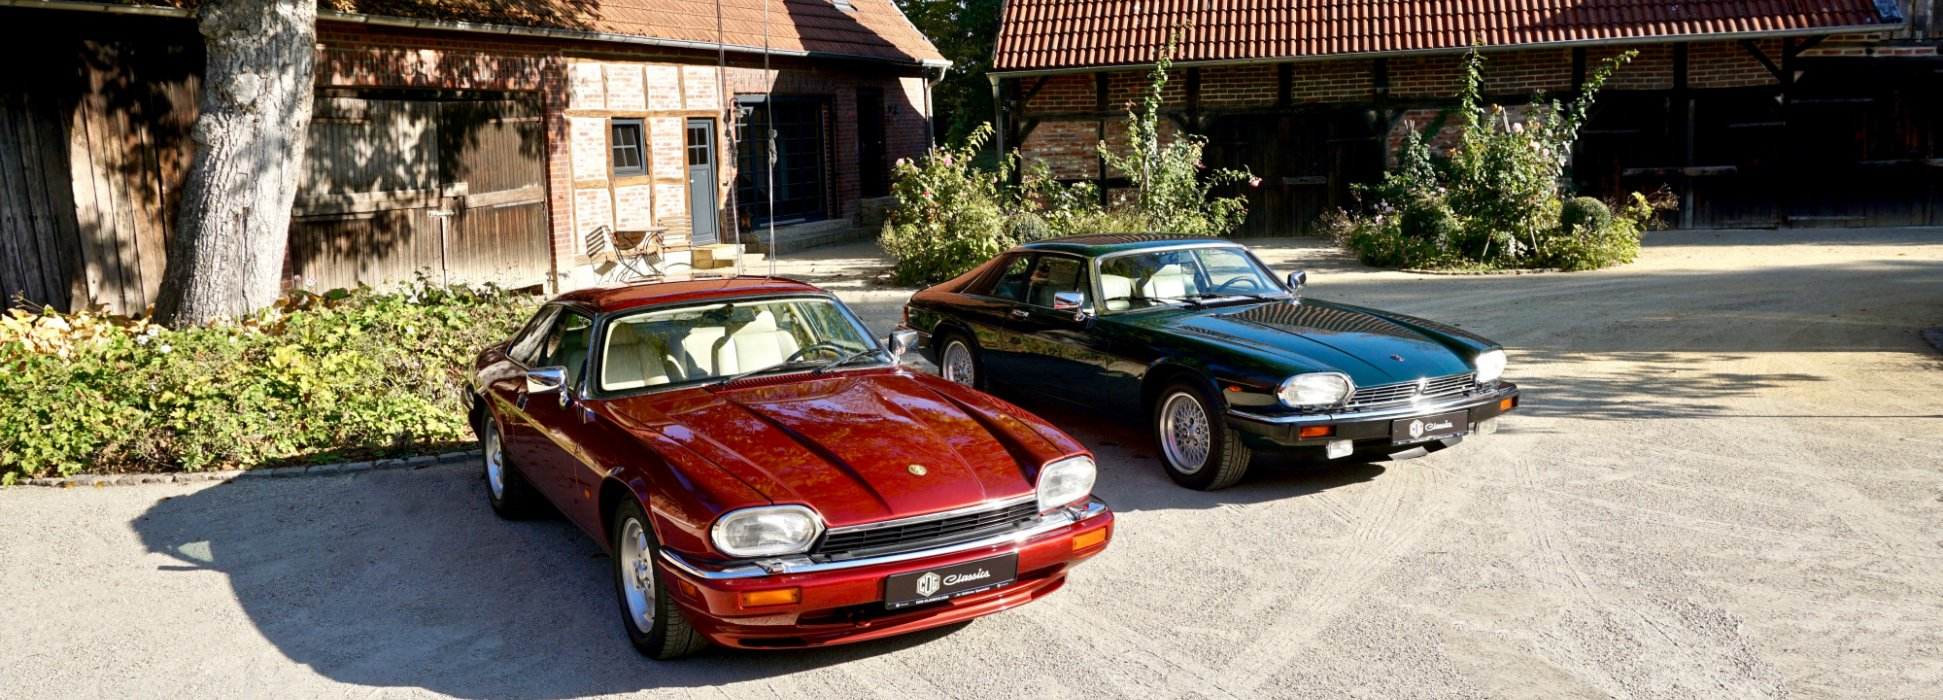 Jaguar XJS 6.0 V12 Coupé 1